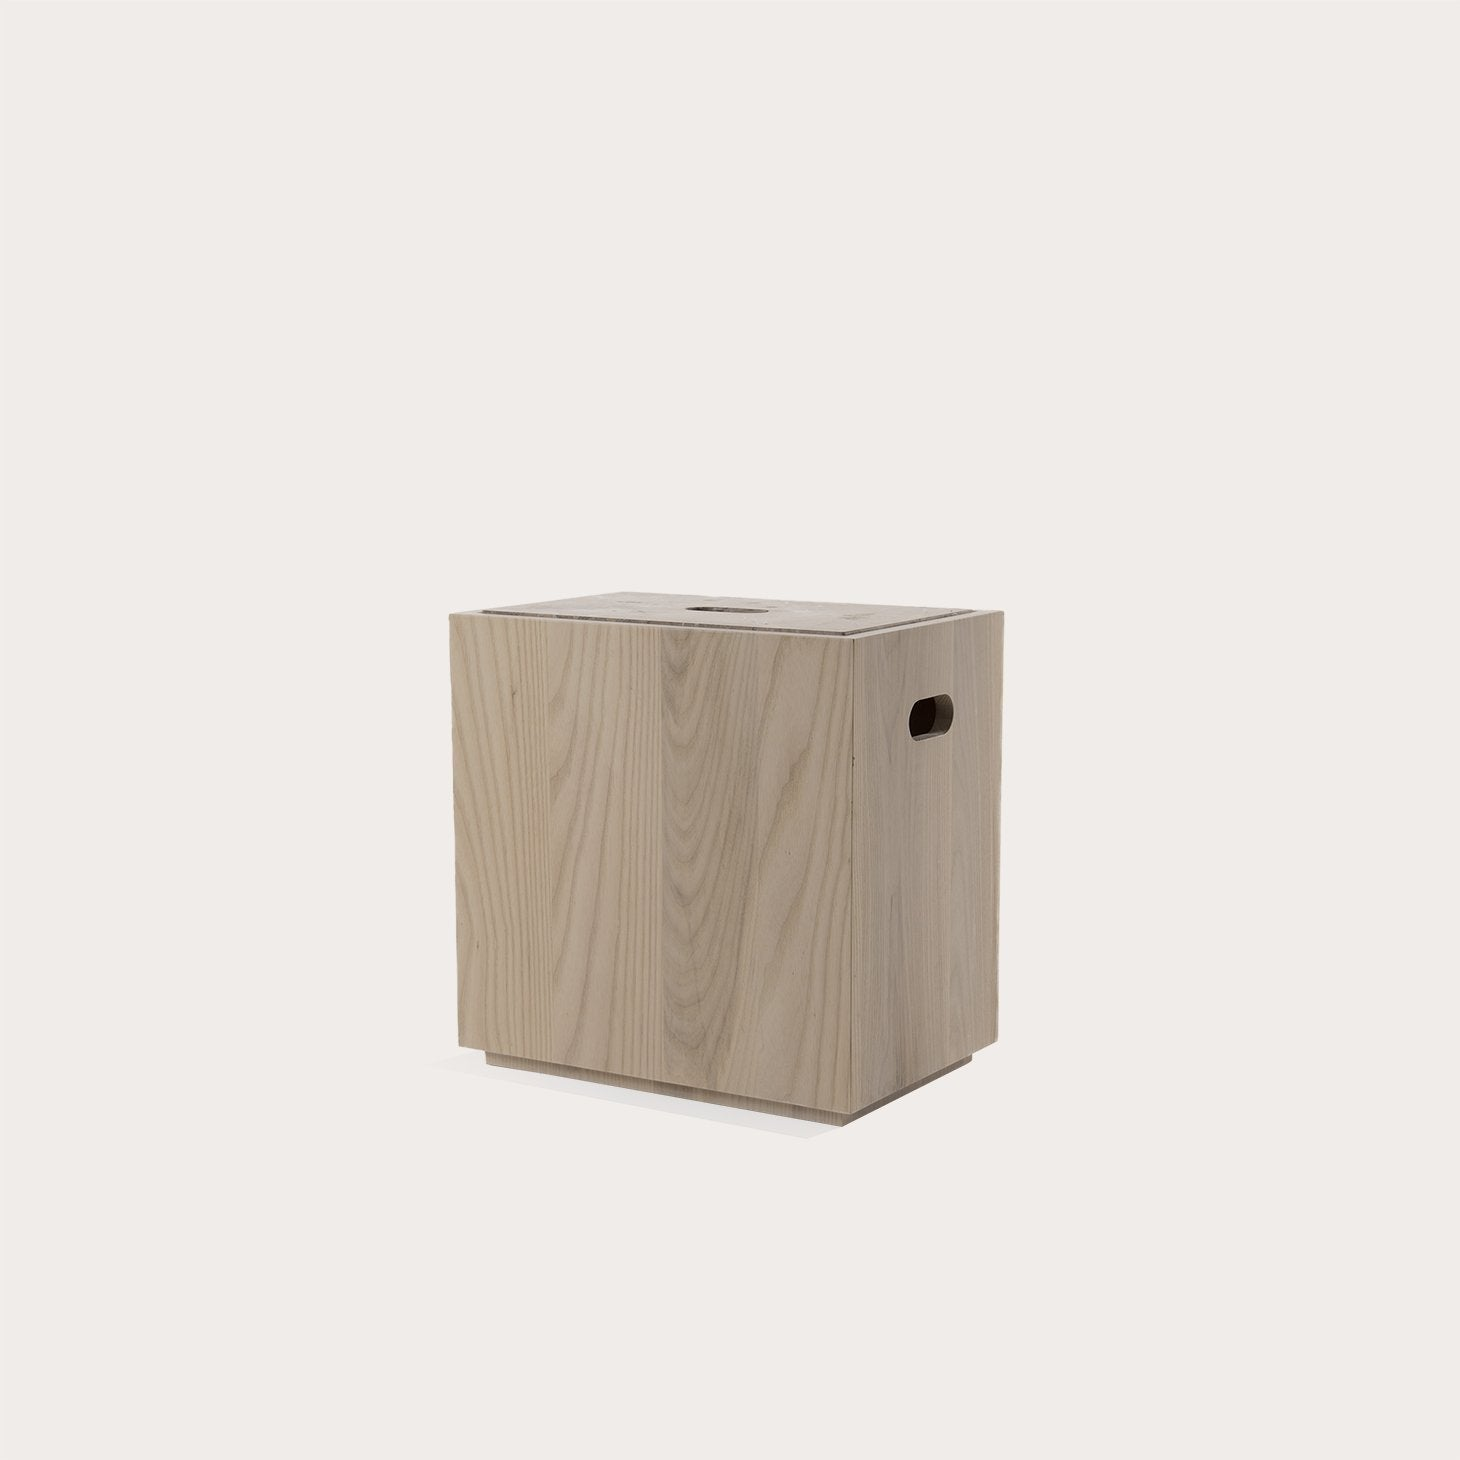 Apple Box Tables Ashley Botten Designer Furniture Sku: 198-230-10001